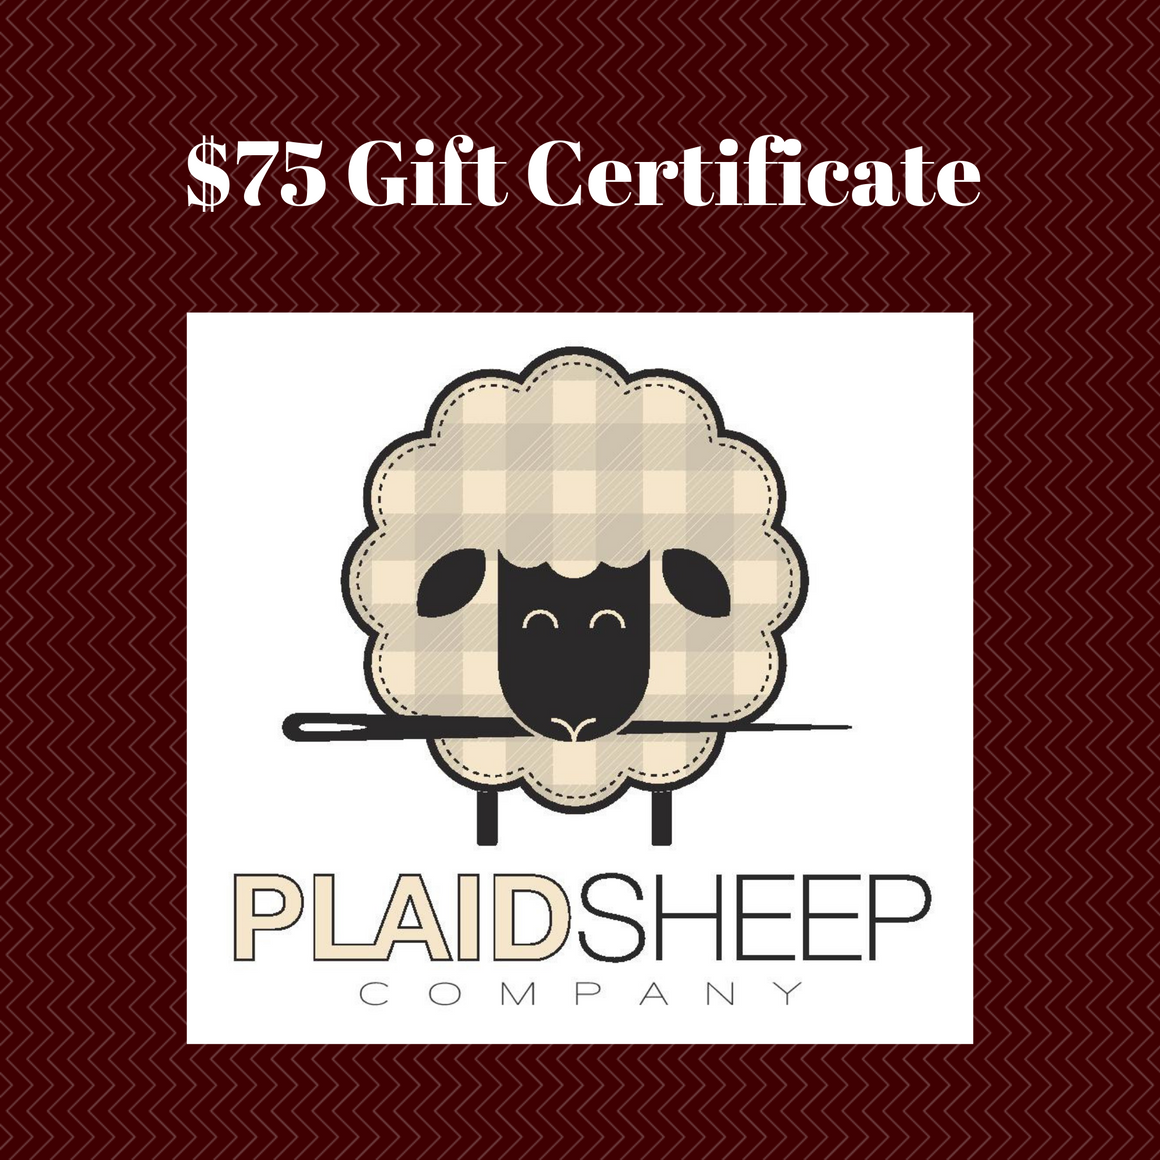 Gift Certificates: $75